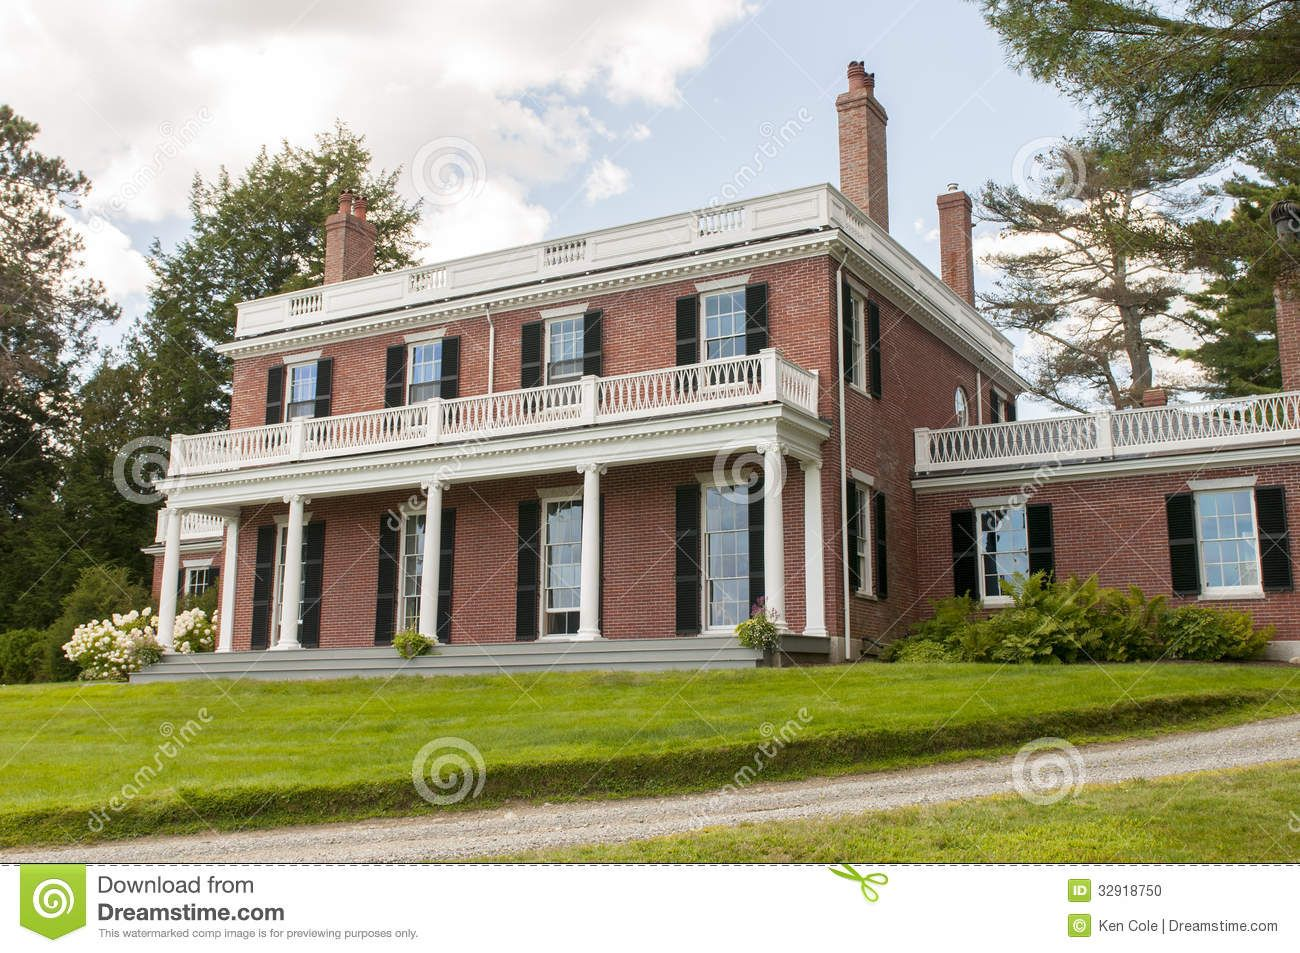 Federal architecture exterior of an old elegant brick Federal style homes